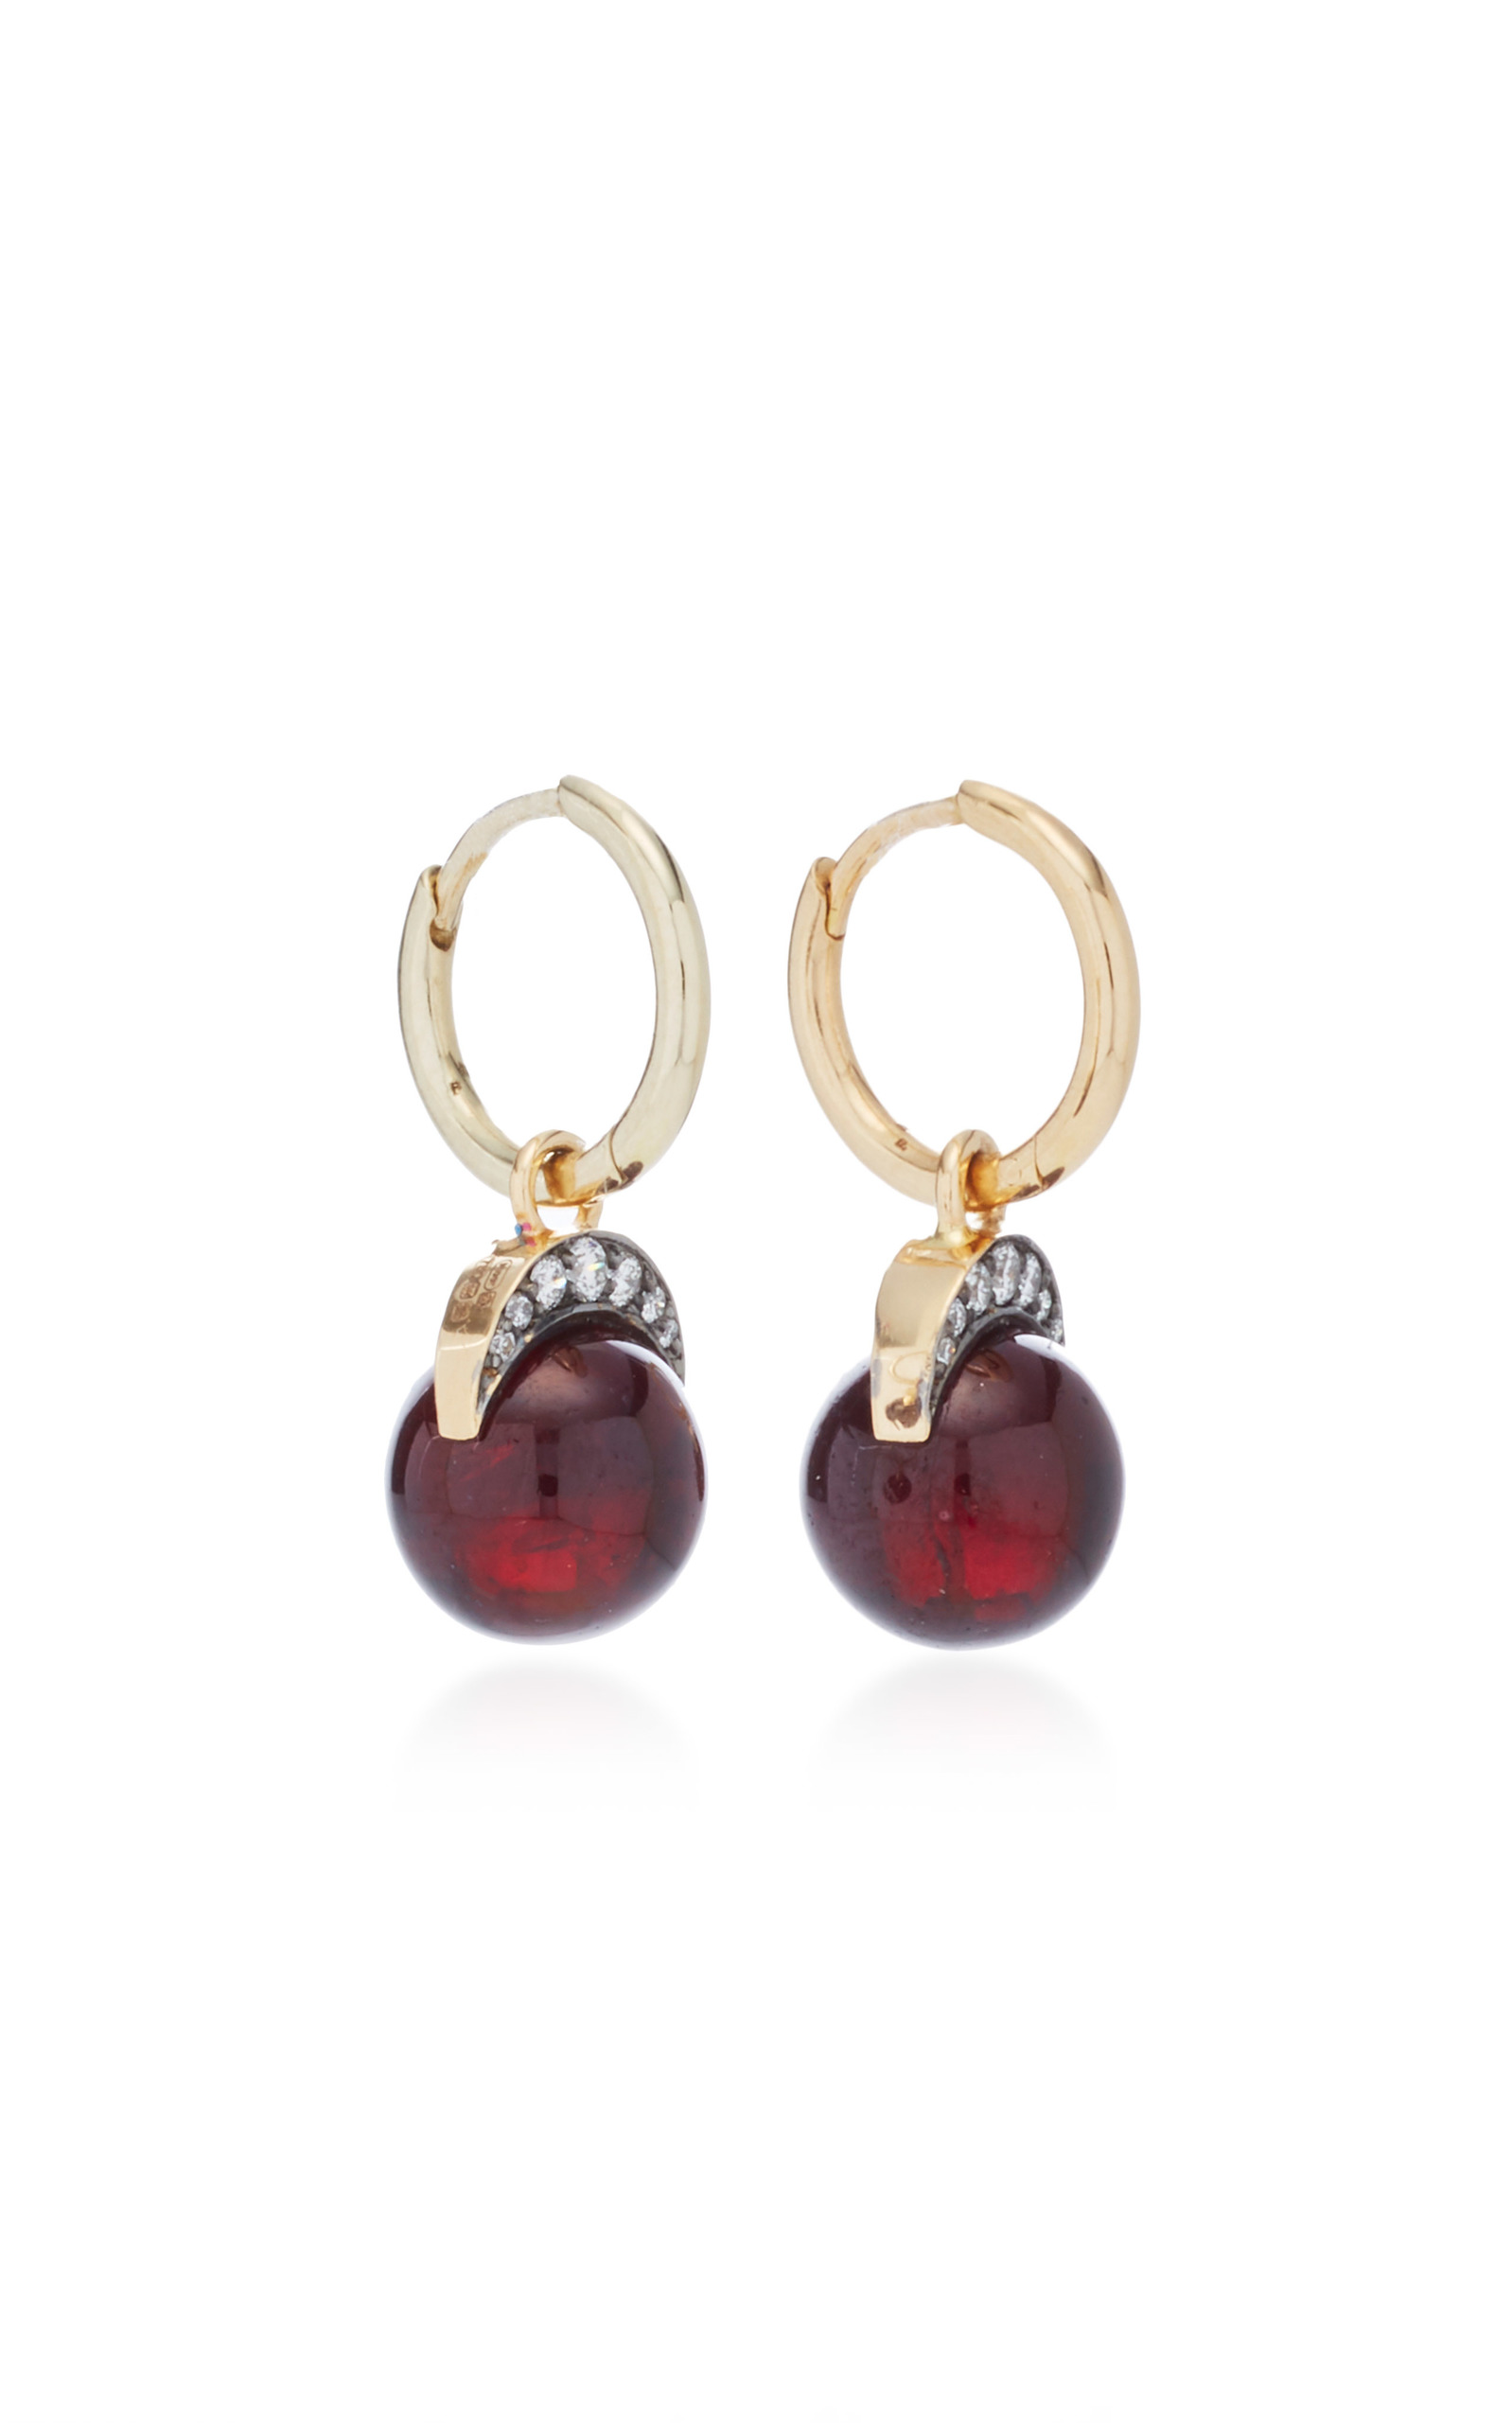 Mala Drop Earrings in Yellow Gold with Garnet &